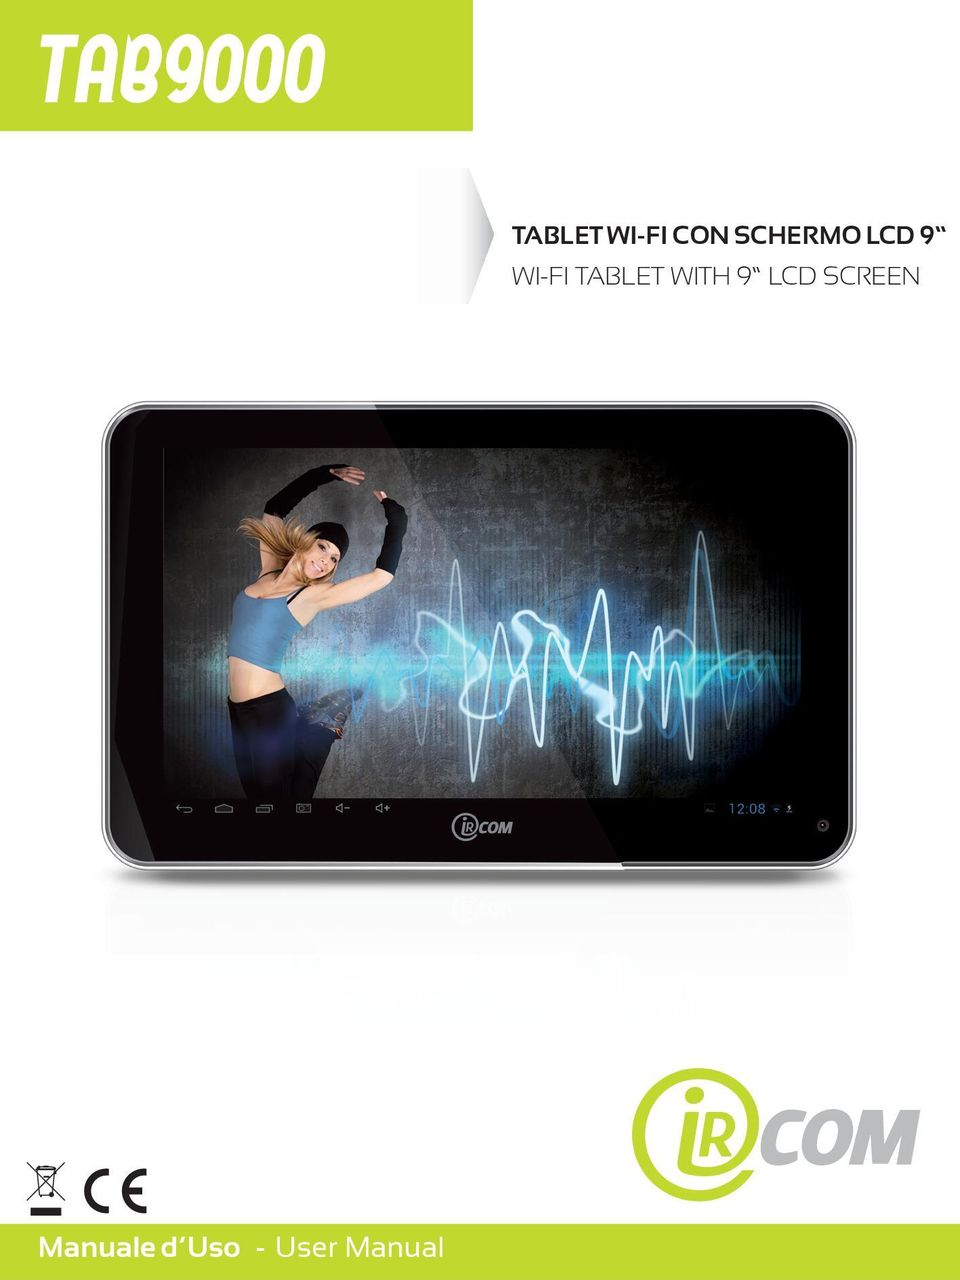 TABLET WITH 9 LCD SCREEN